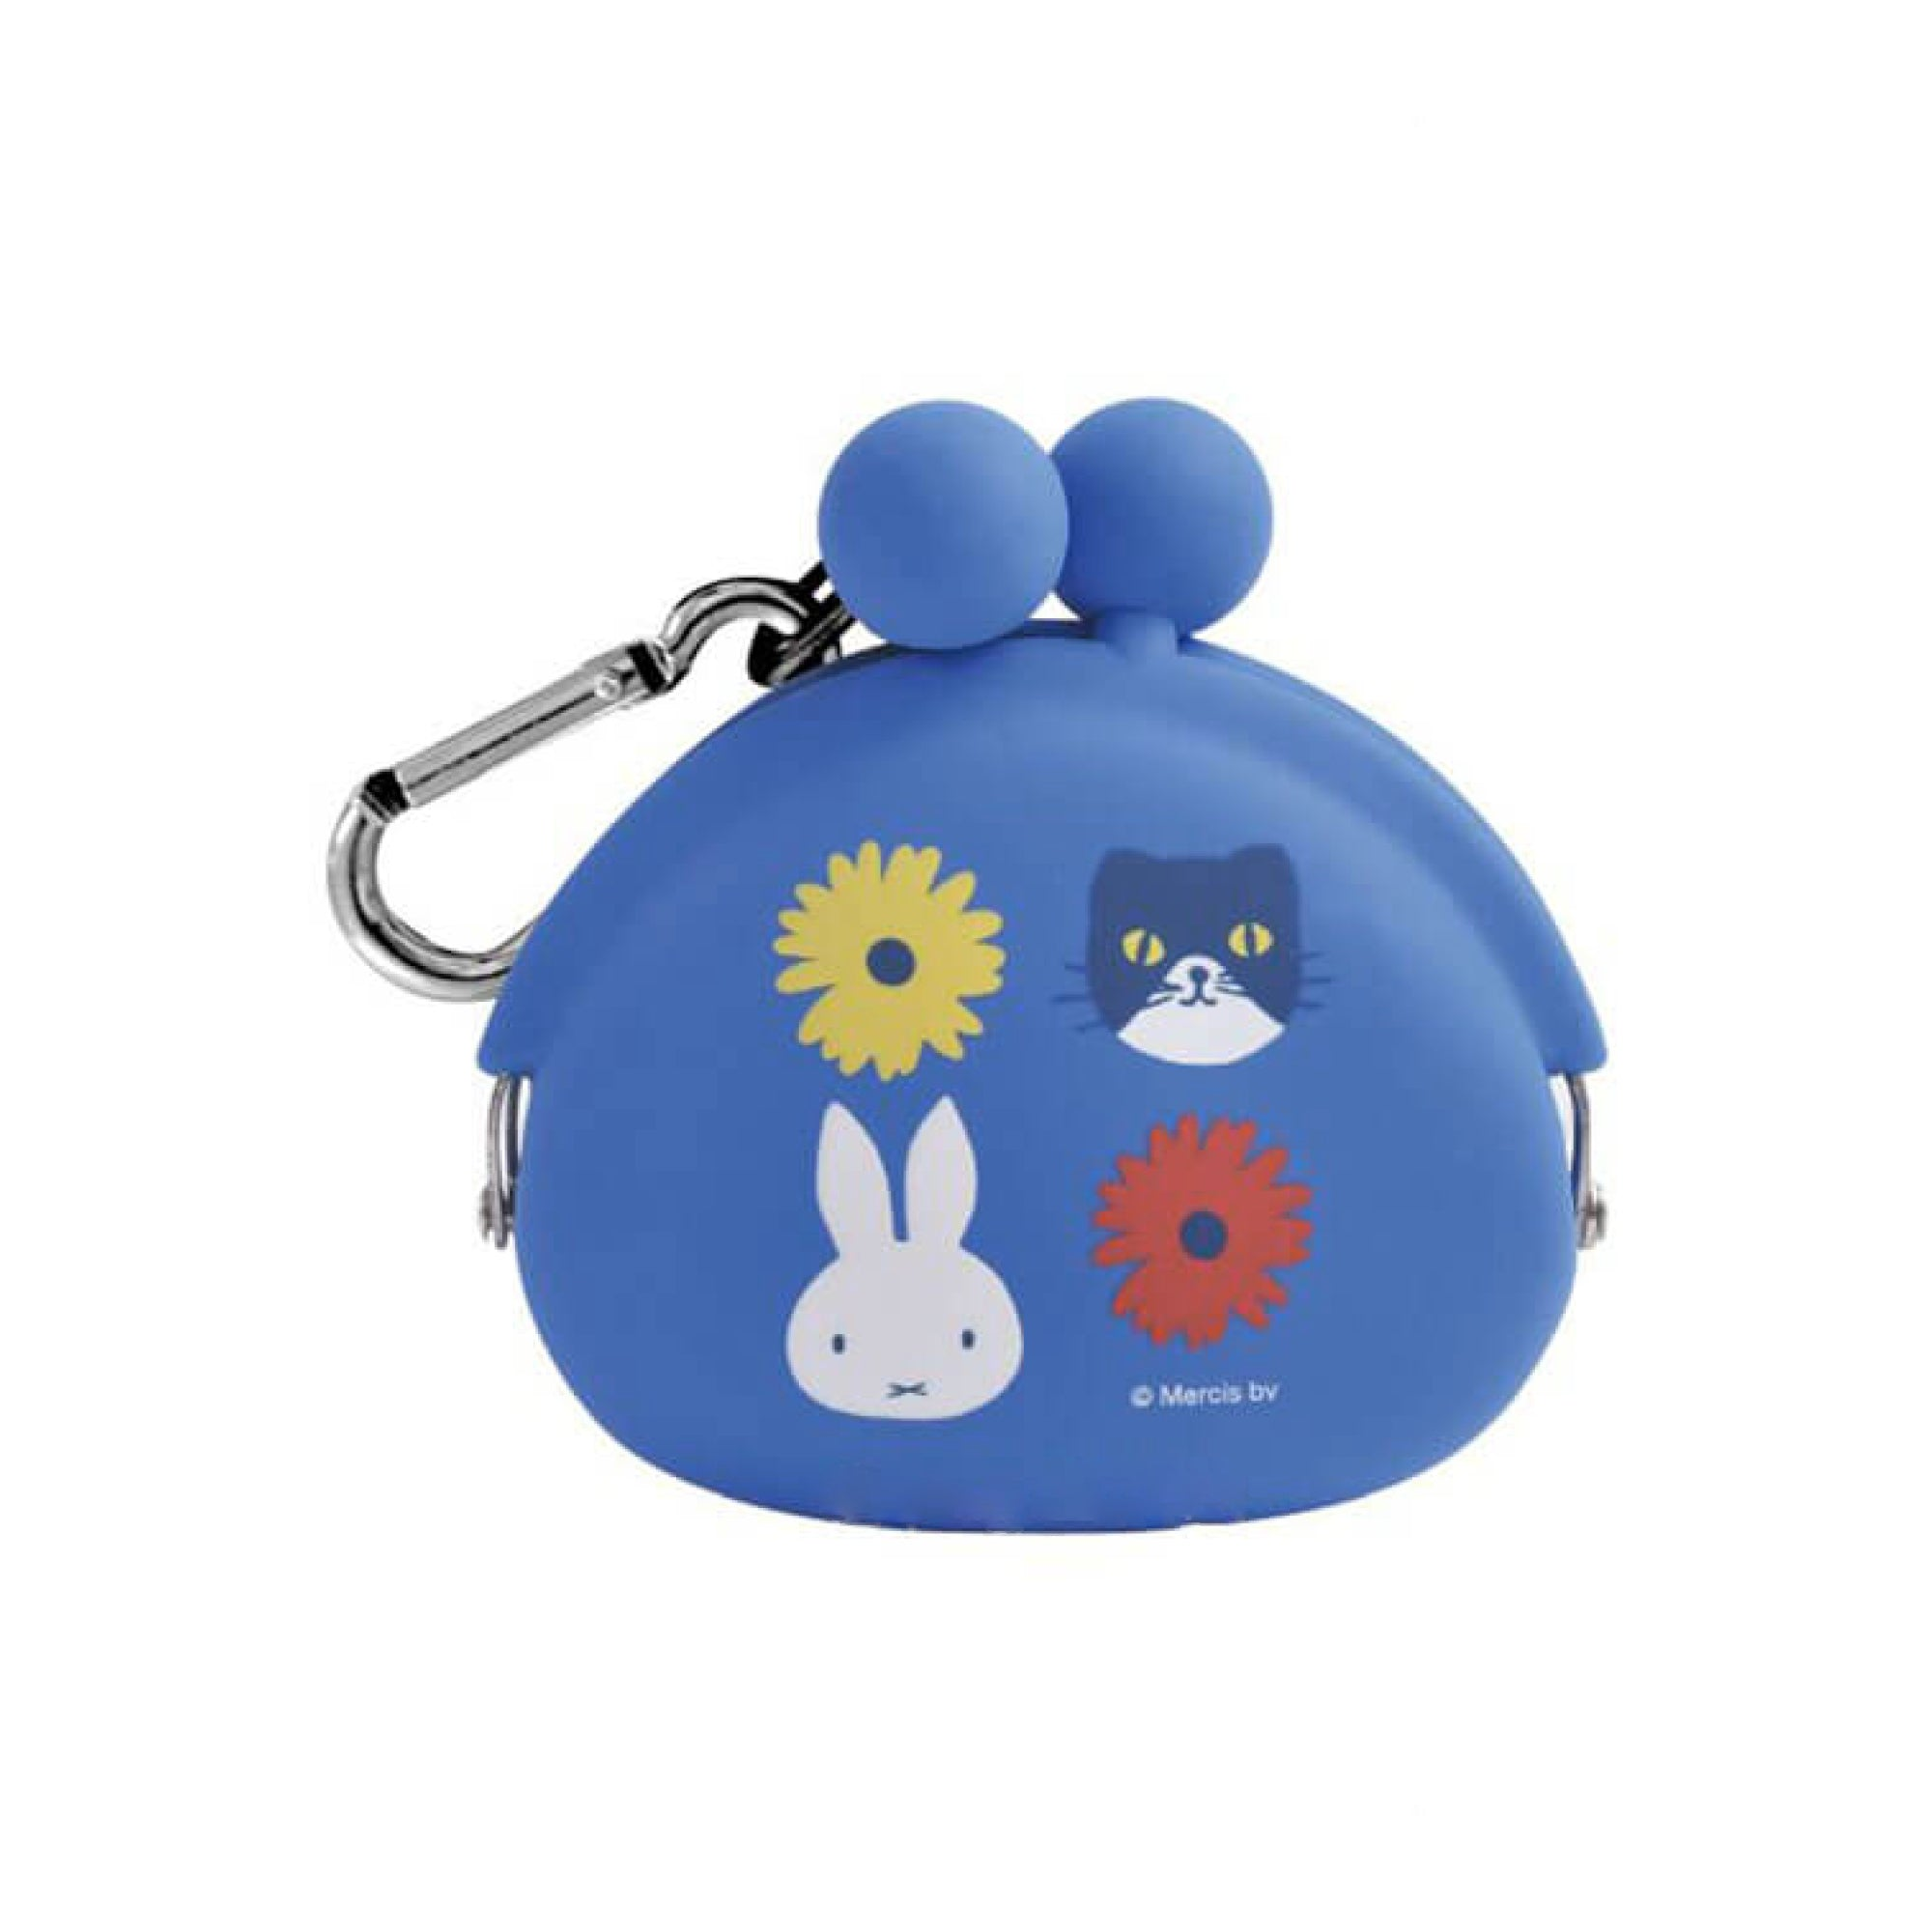 Pochibi silicon coin pouch, Miffy & cat blue